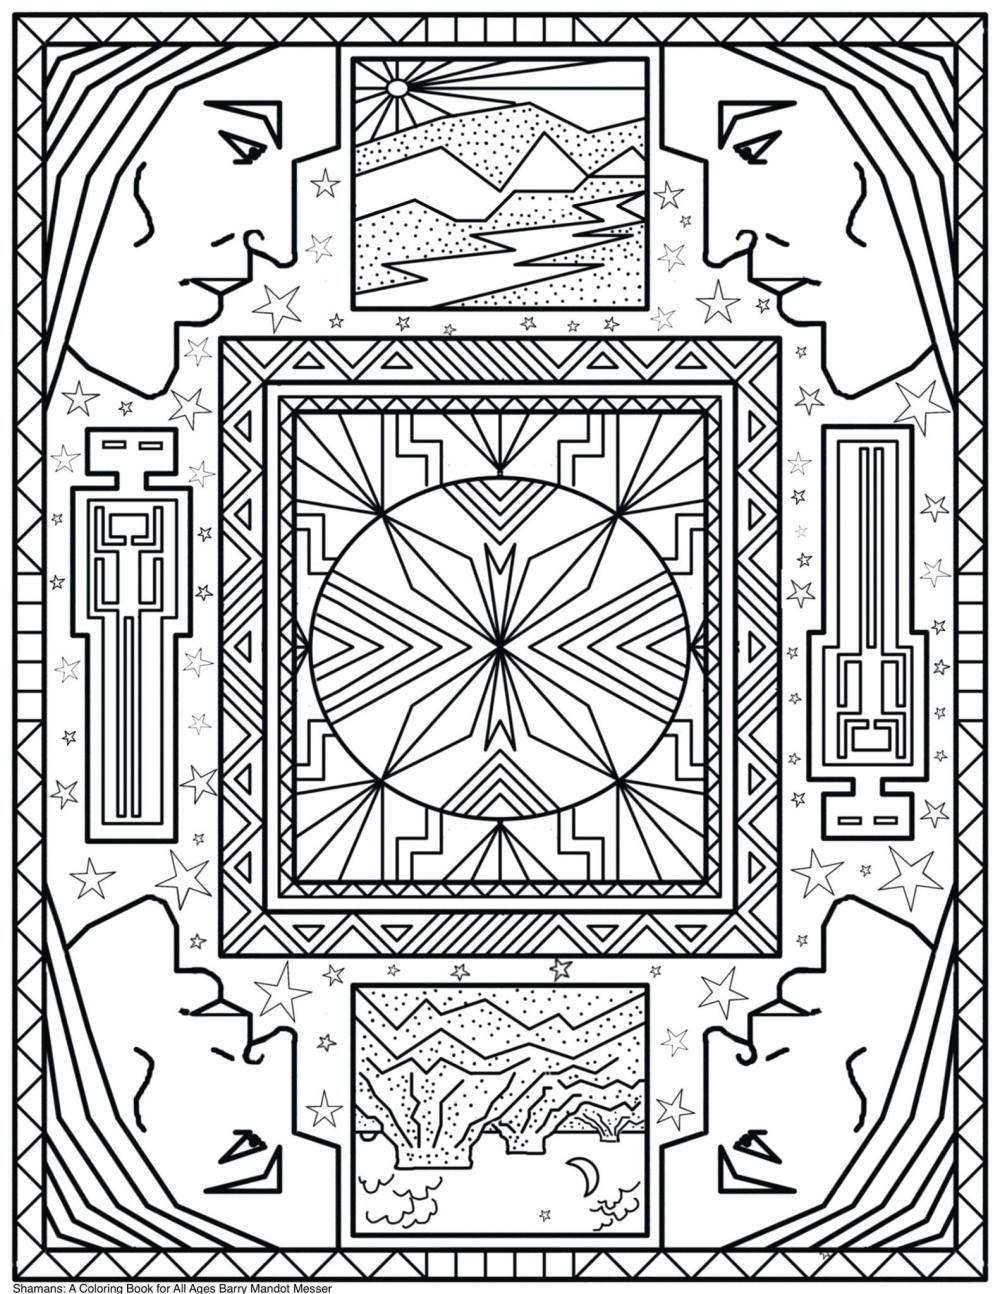 Shamans Coloring book by Barry Mandot Messer Free coloring page for adults